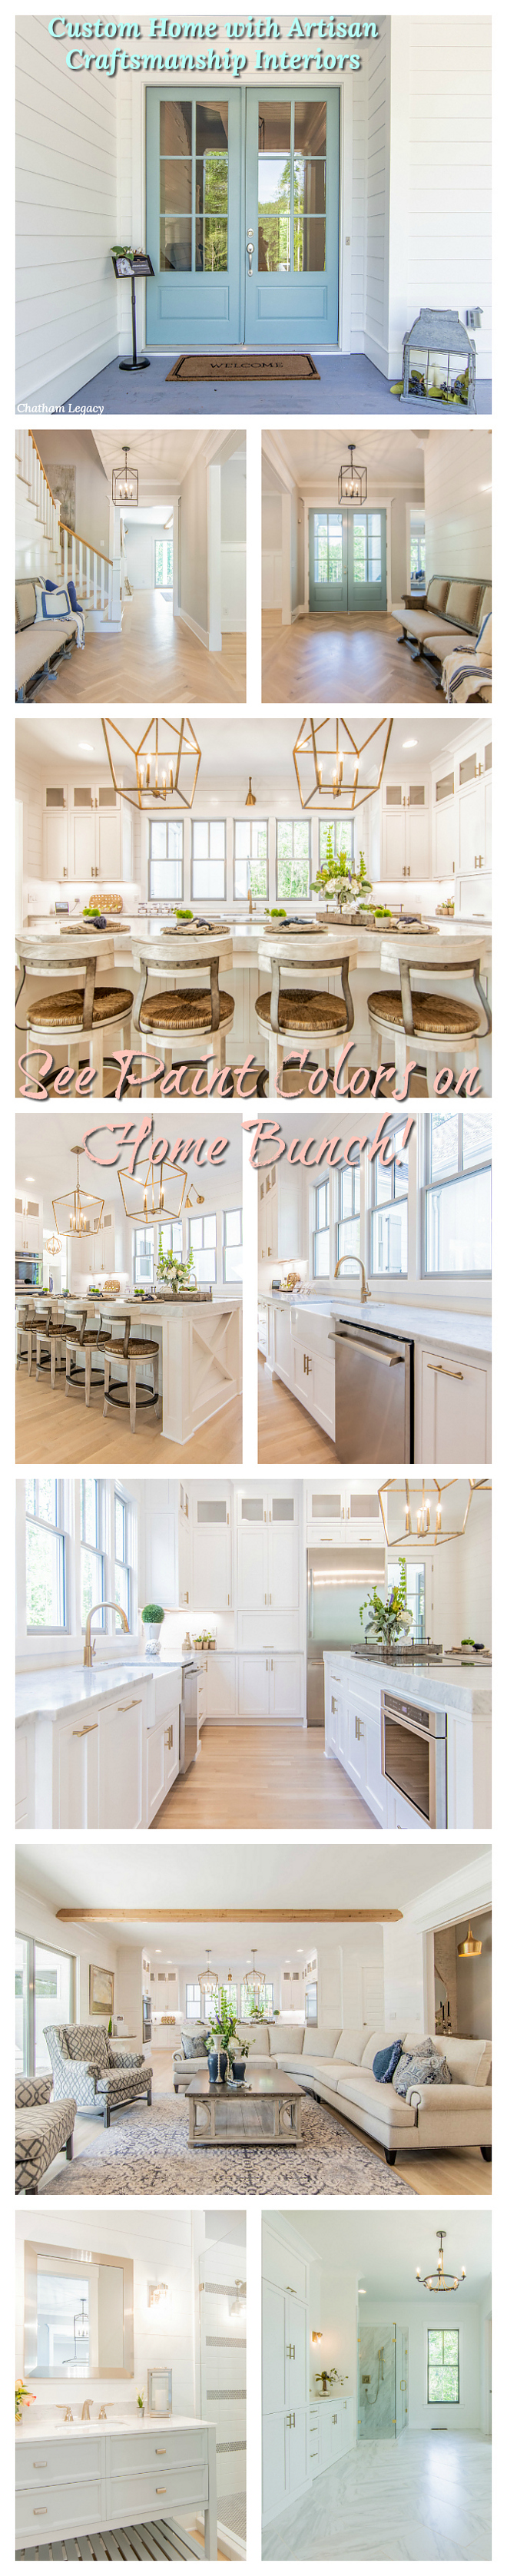 Custom Home with Artisan Craftsmanship Interiors paint colors and decor on Home Bunch